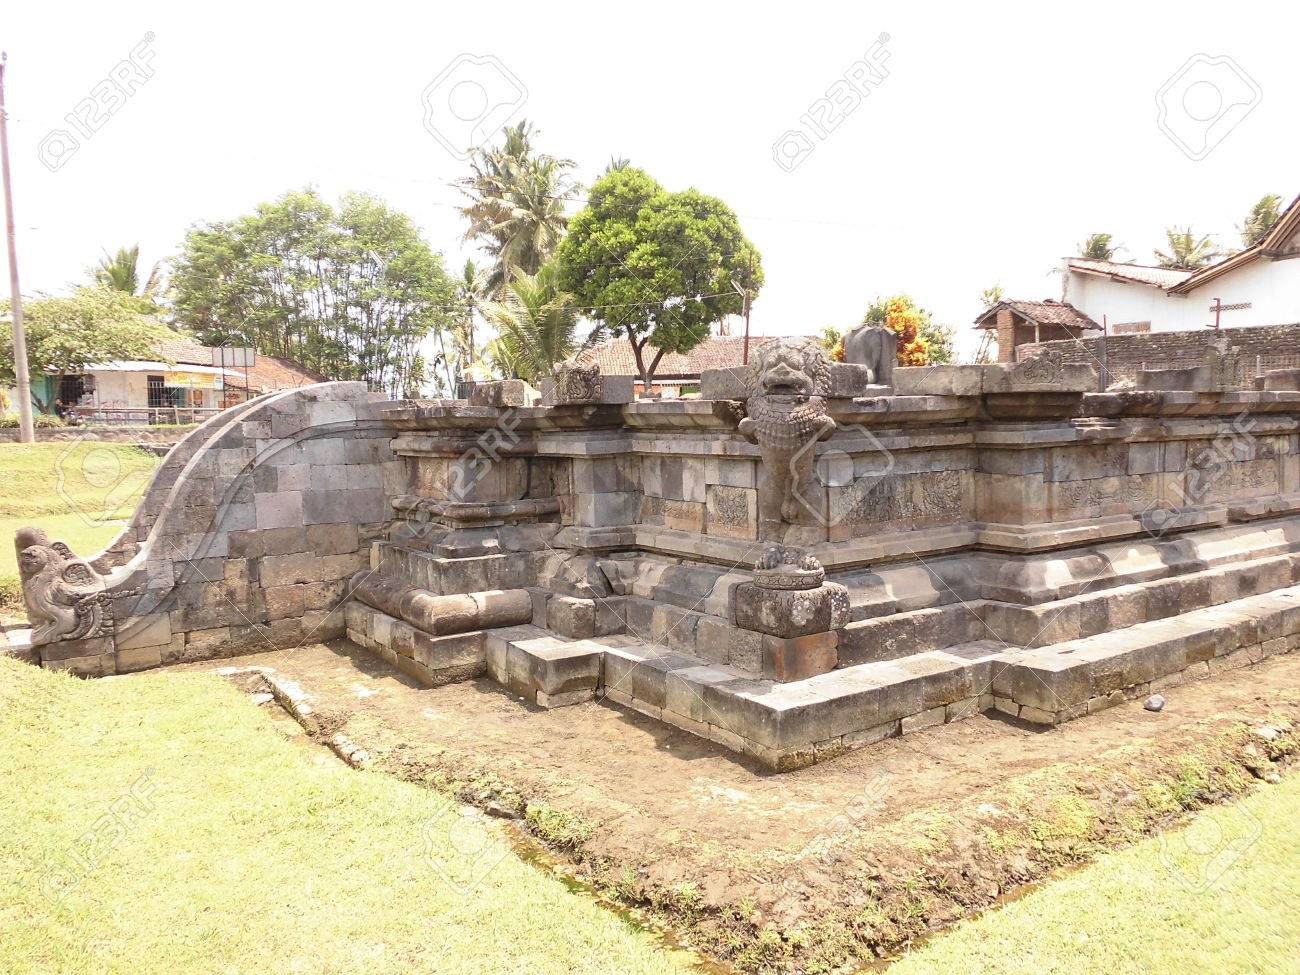 Ruin Candi Ngawen Temple Magelang Central Java Indonesia Stock Photo